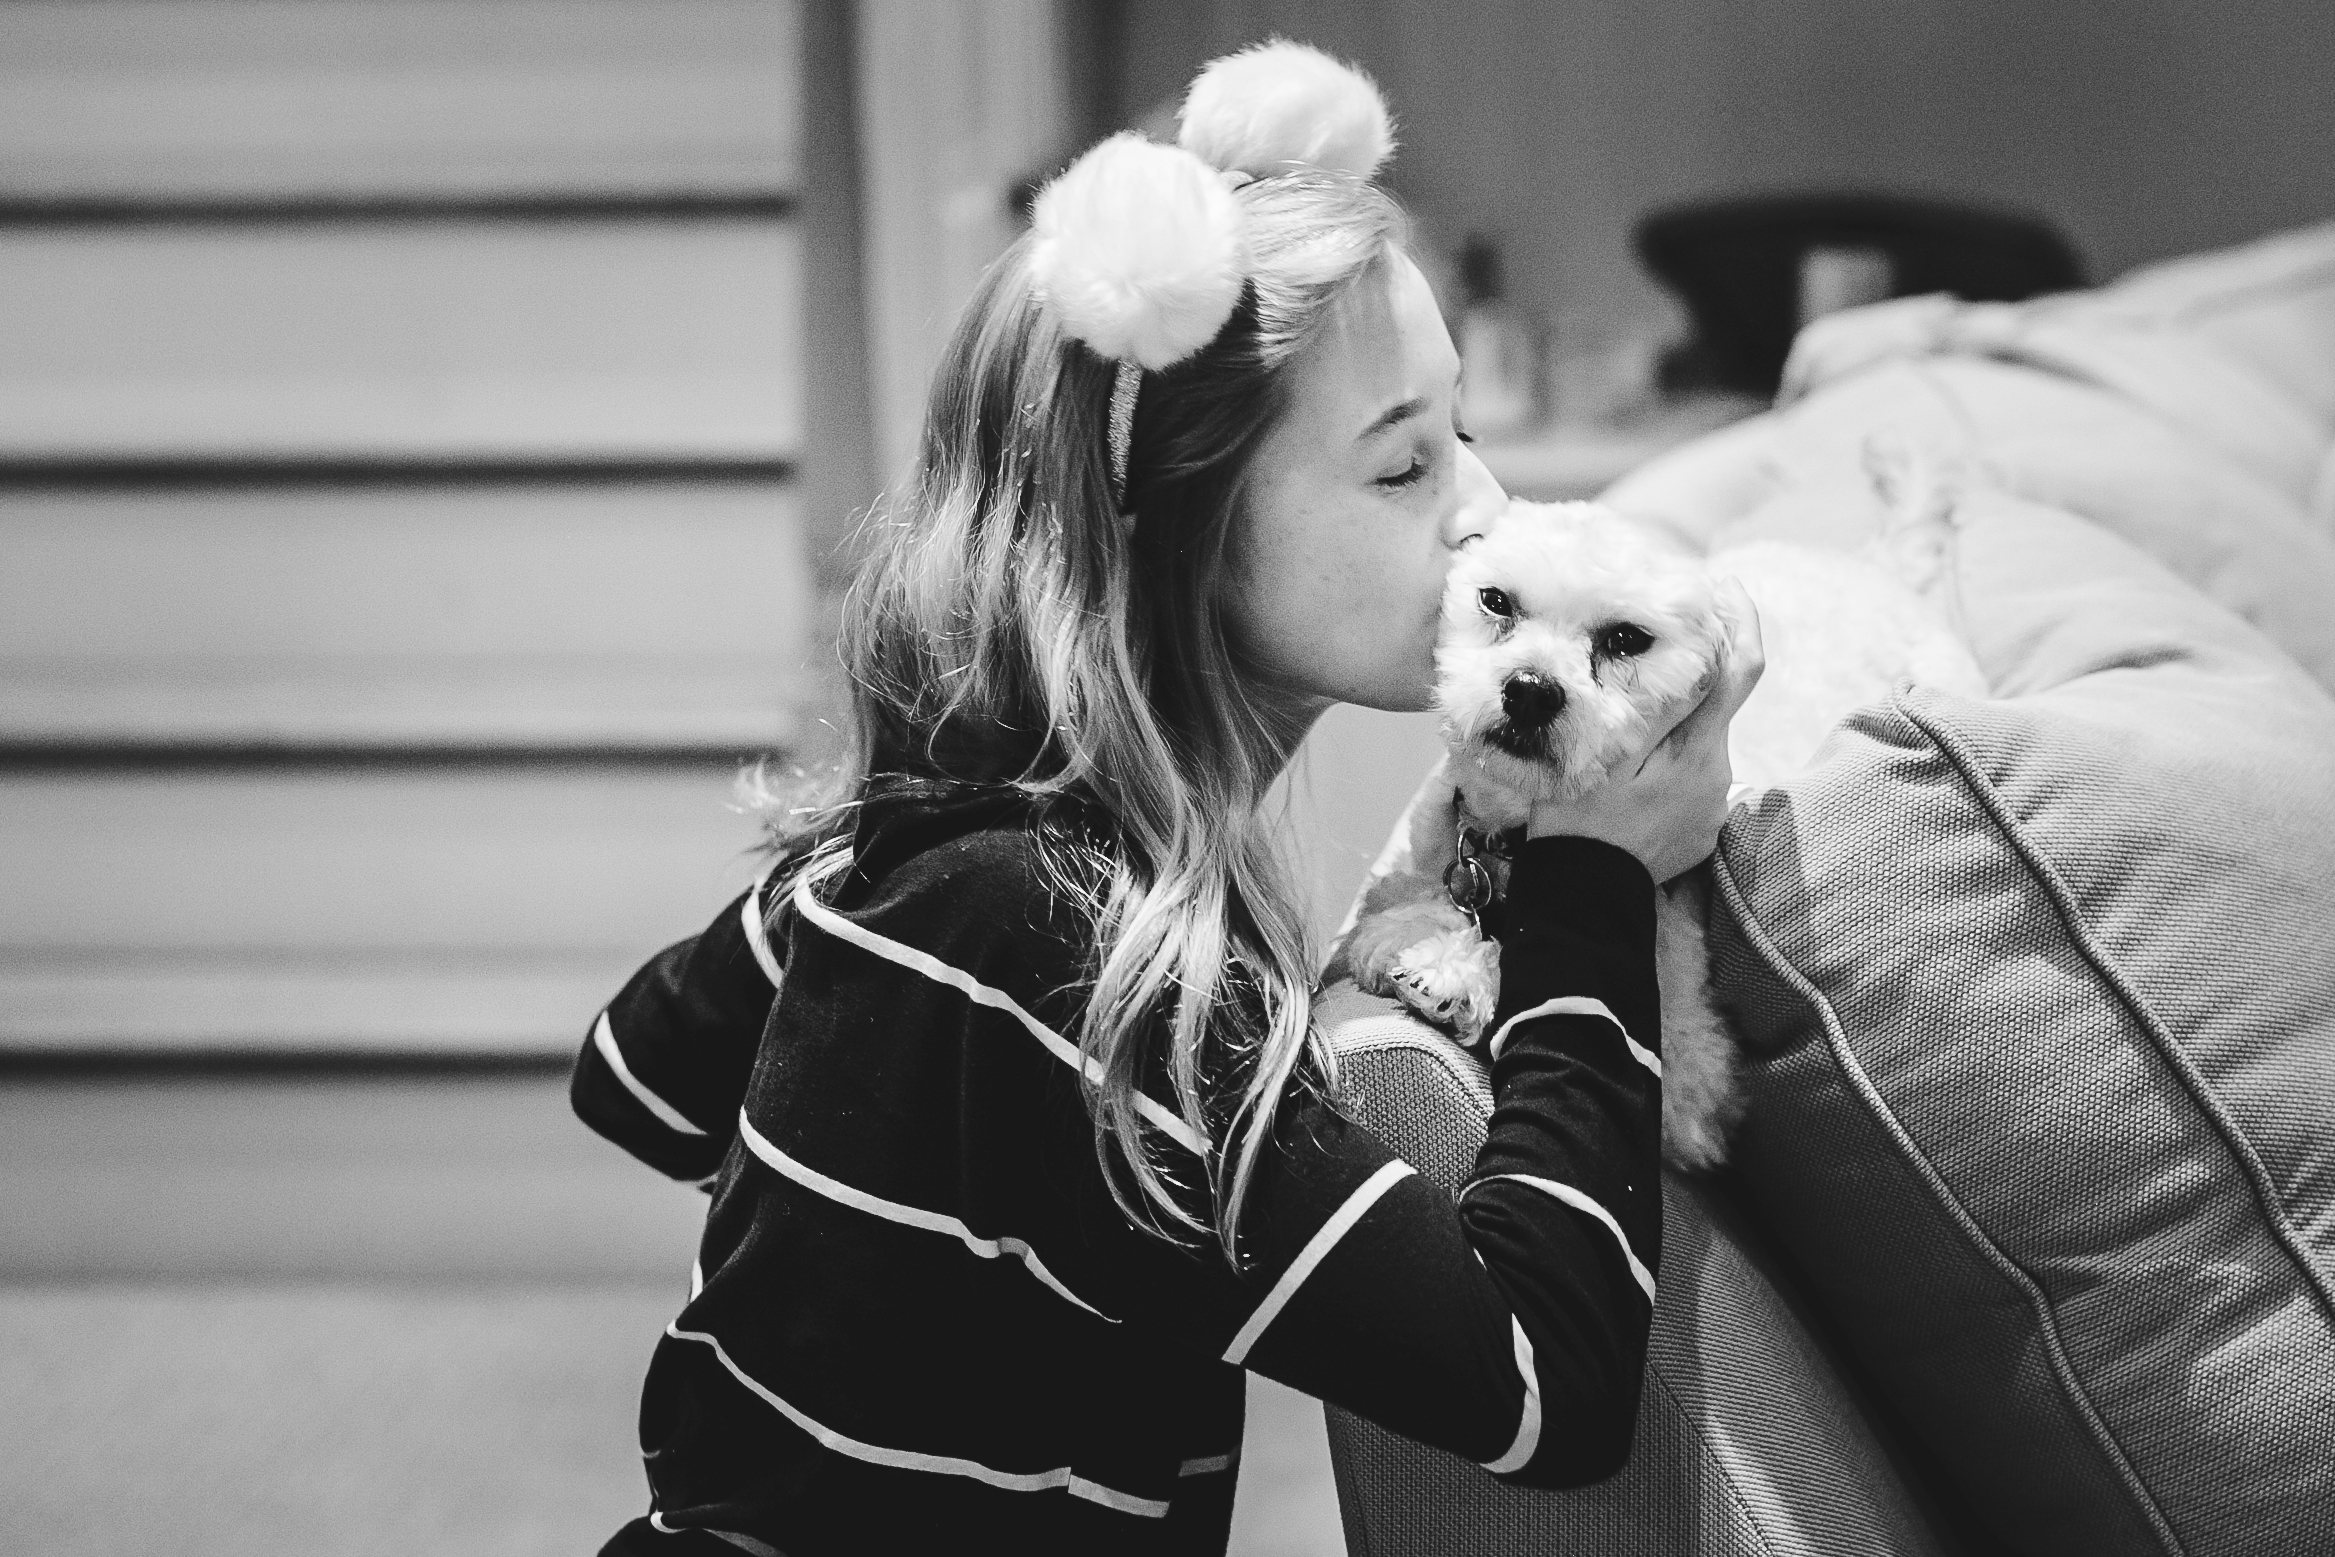 little girl kissing small dog on head